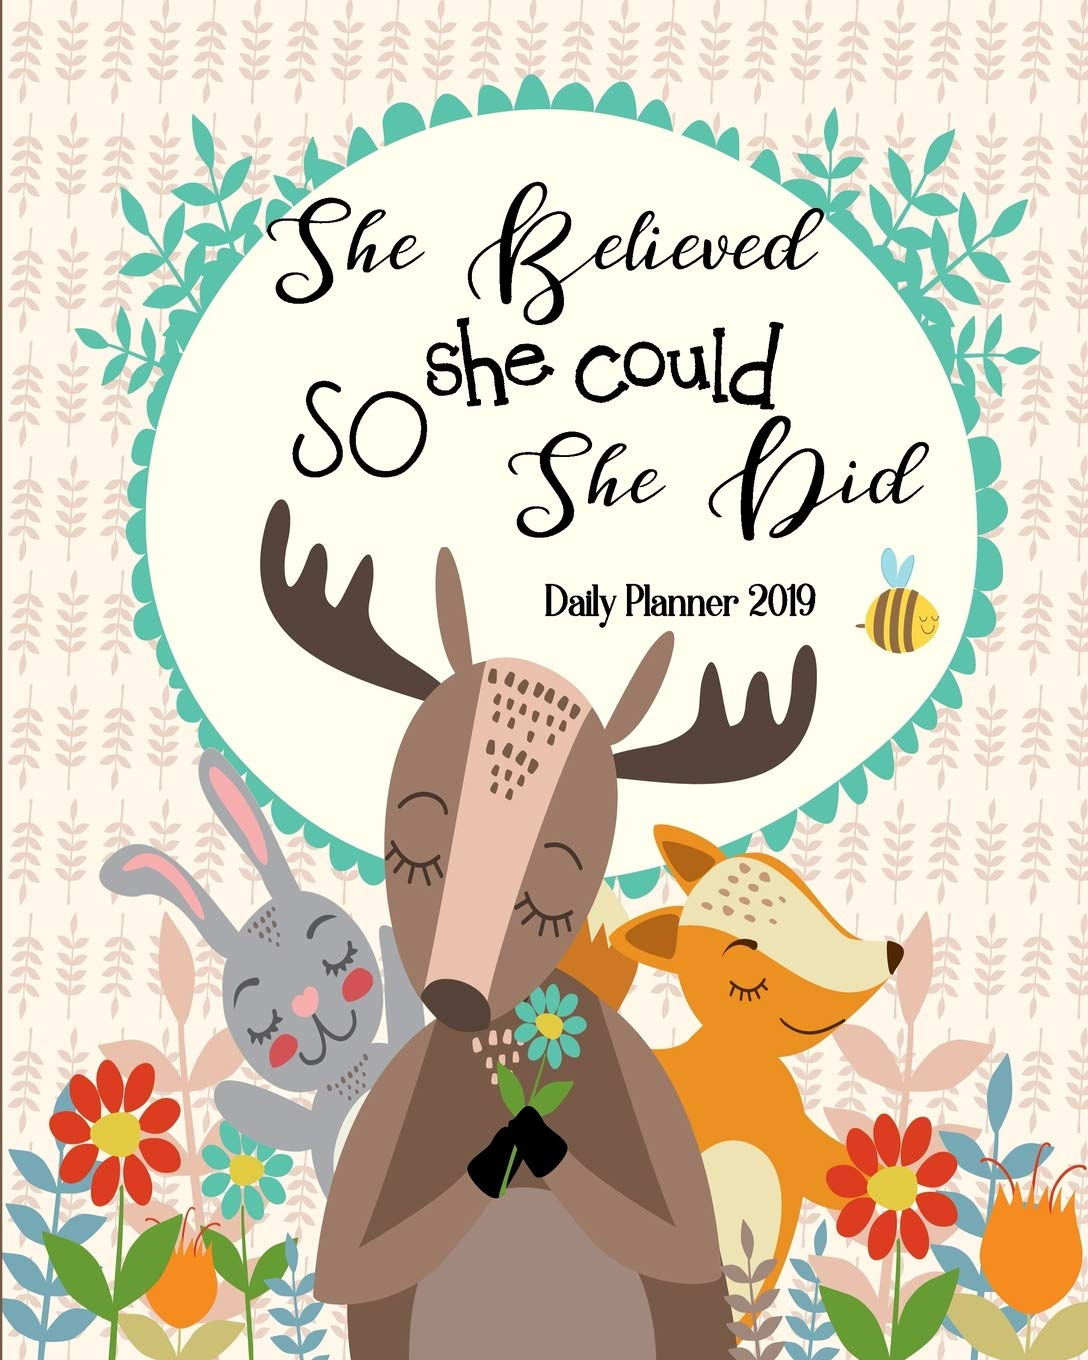 Amazon.com: She Believed She Could So She Did Daily Planner ...